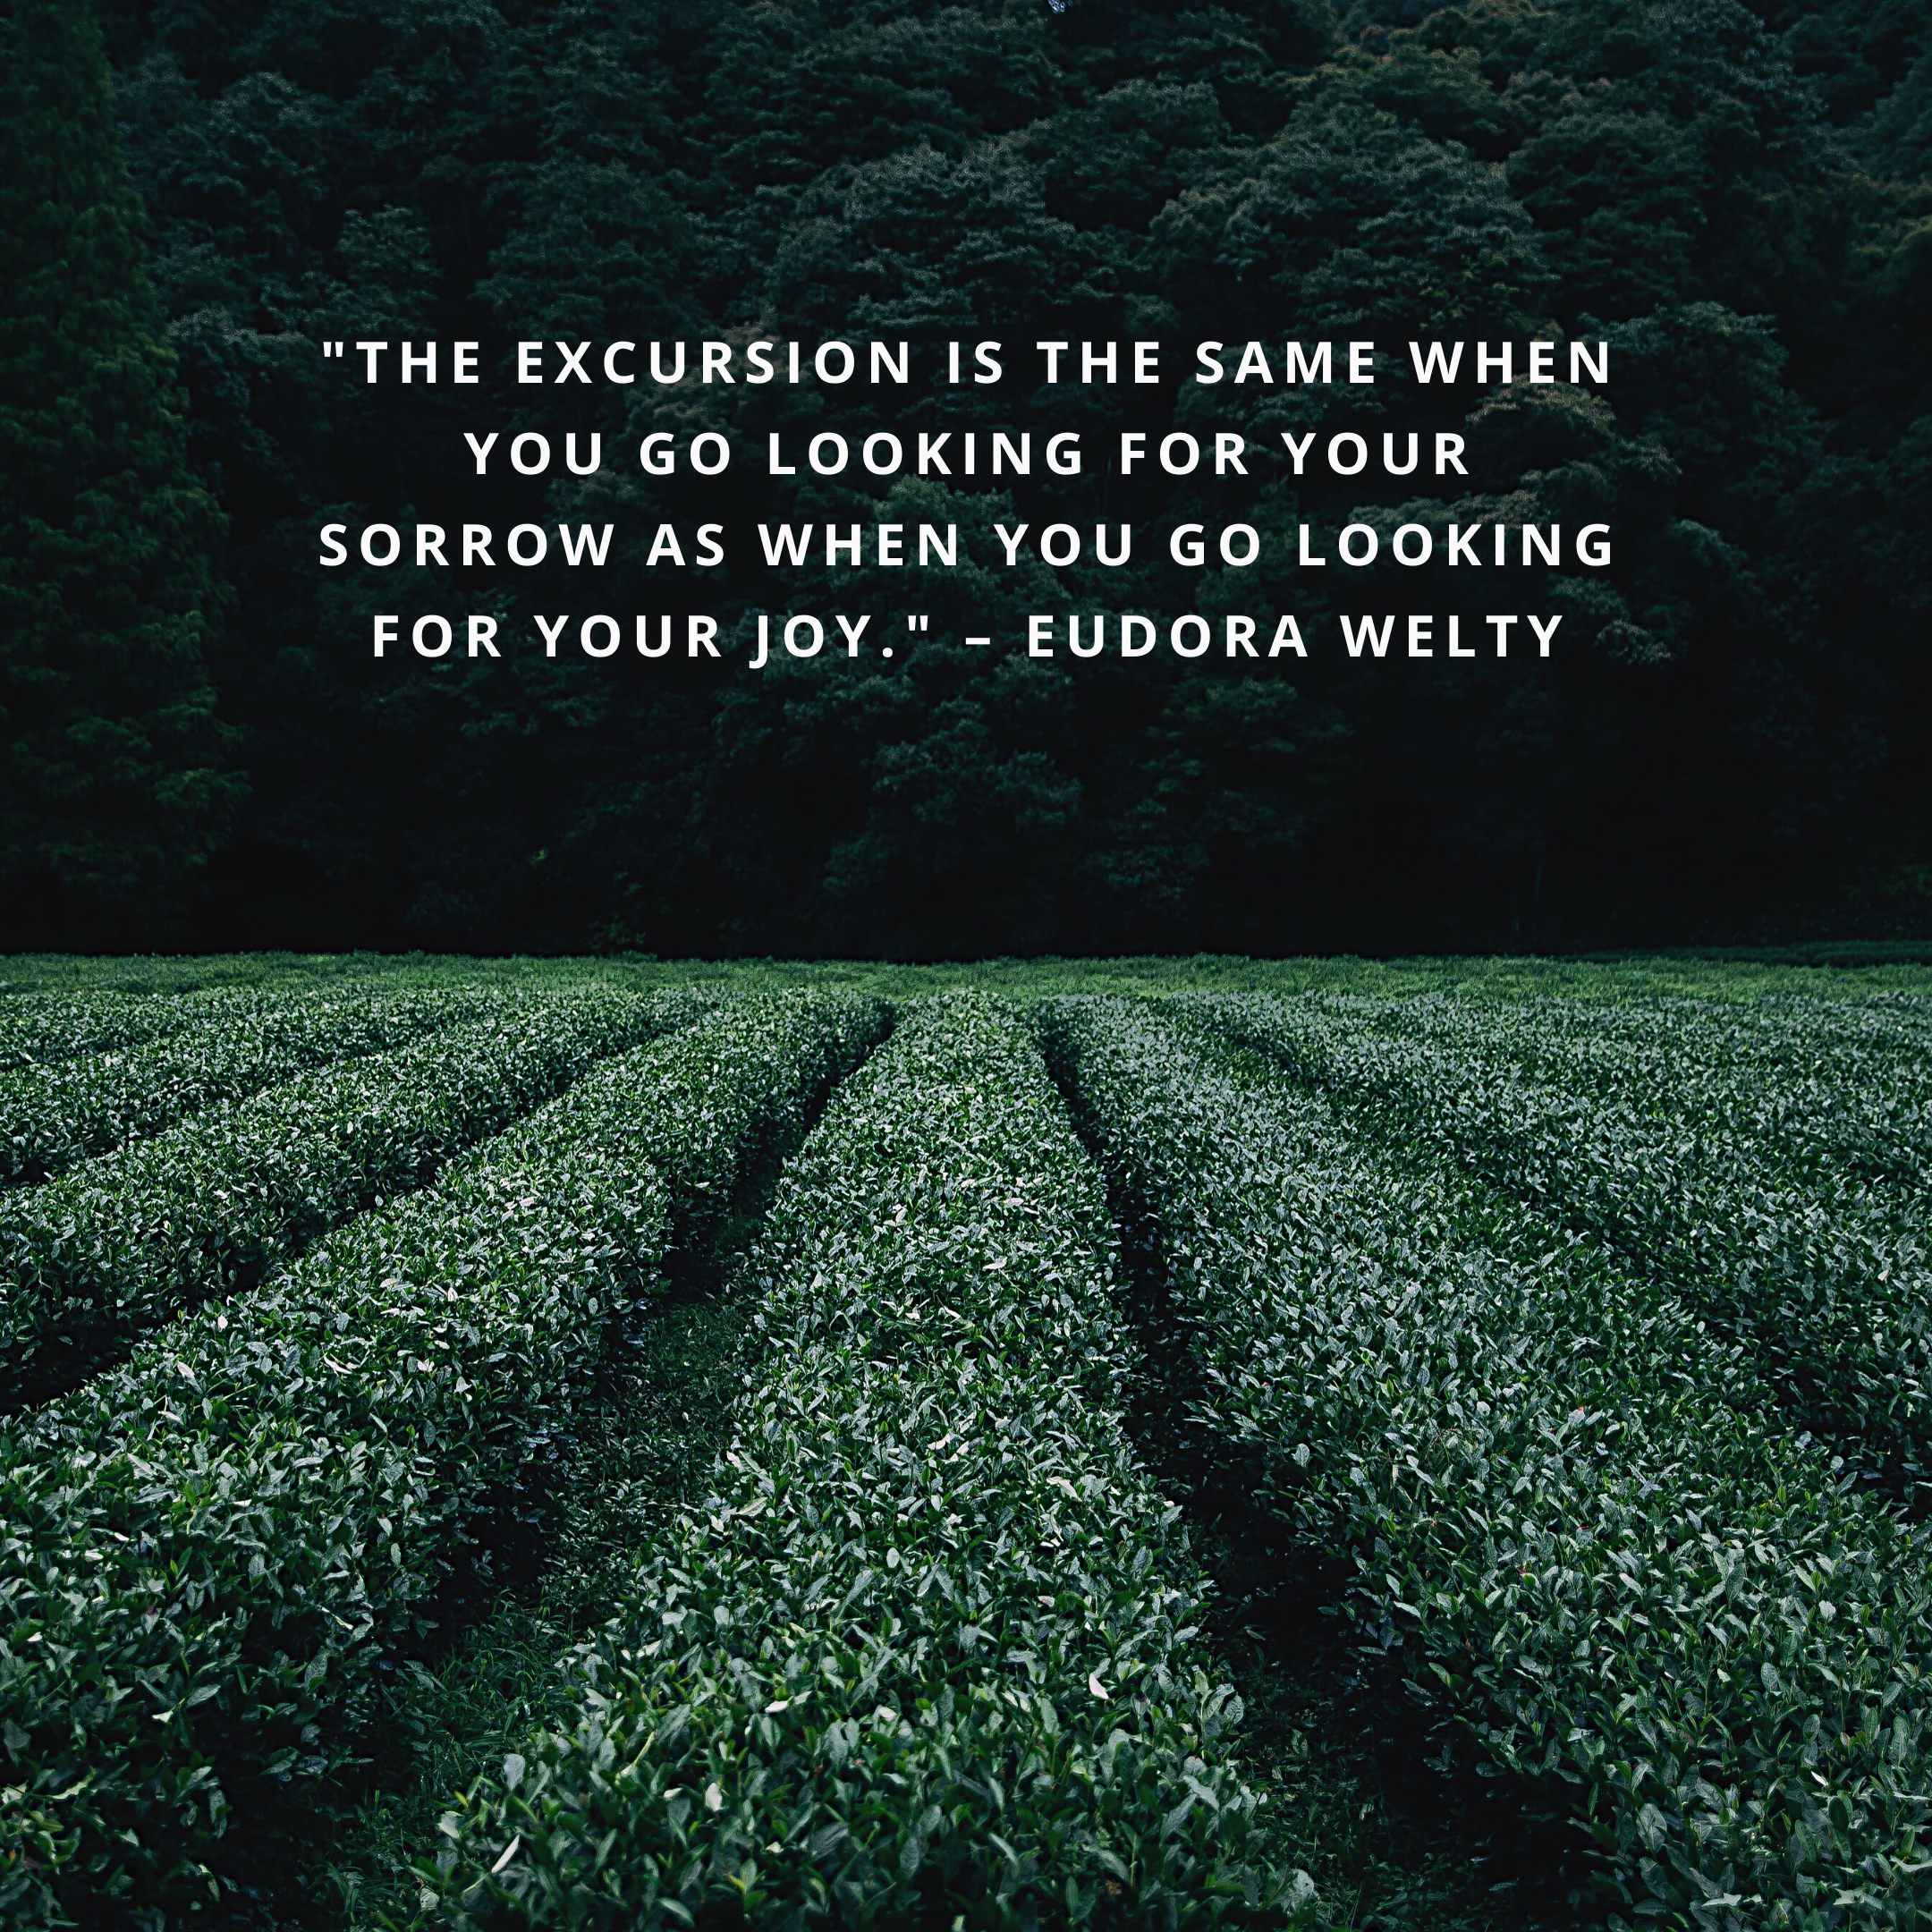 """""""The excursion is the same when you go looking for your sorrow as when you go looking for your joy."""" –Eudora Welty"""